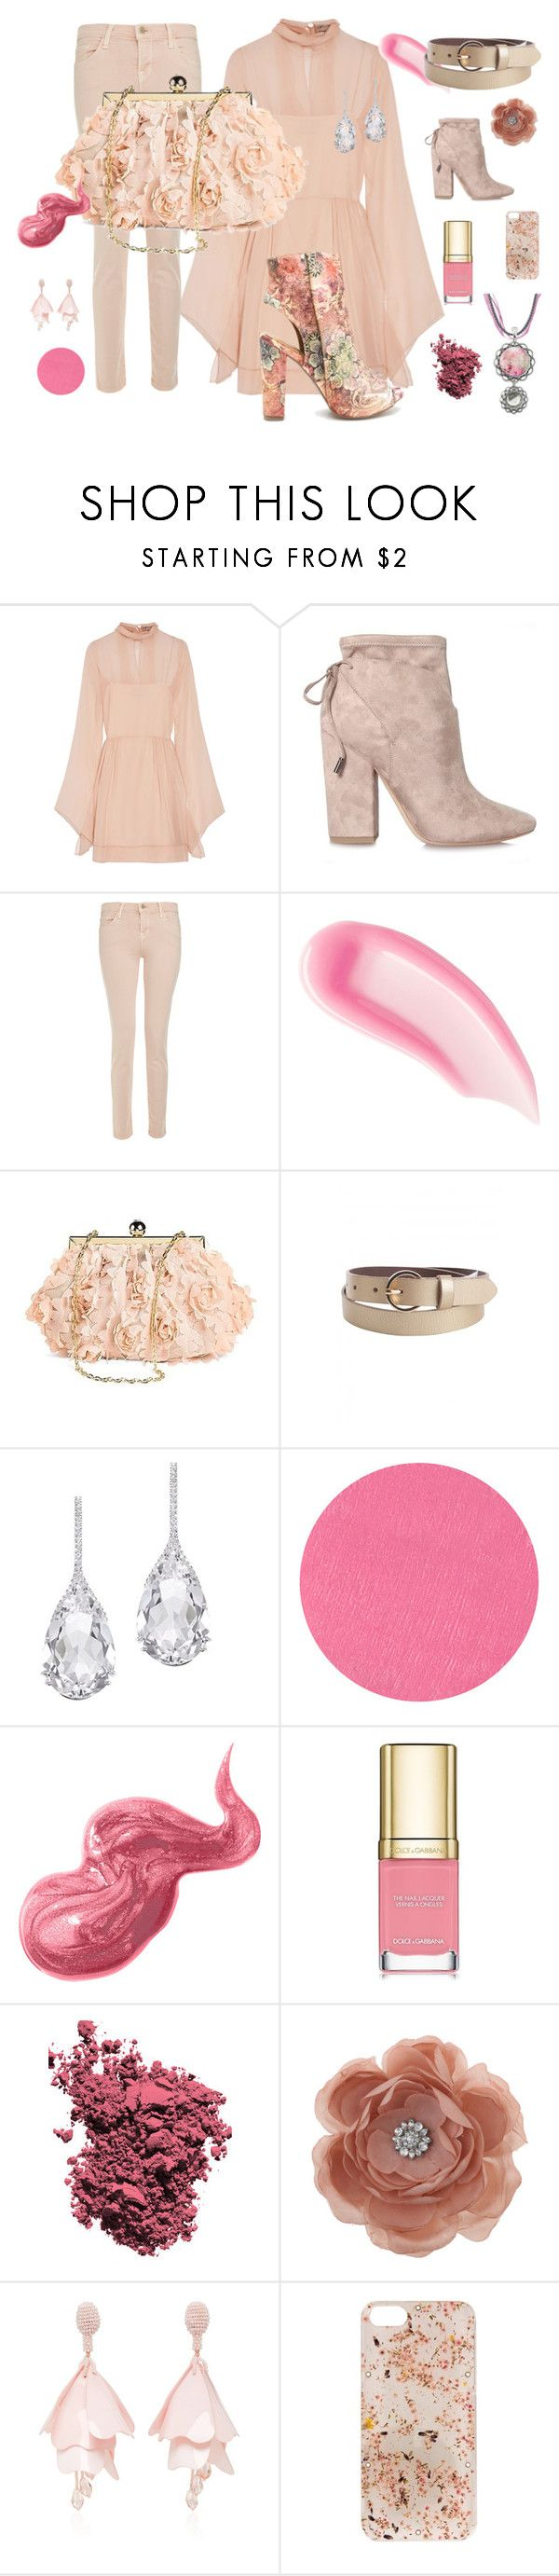 """""""Shabby Chic"""" by donna-l-wentz-hilbert ❤ liked on Polyvore featuring Emilio Pucci, Kendall + Kylie, J Brand, Chantecaille, Tevolio, Plukka, By Terry, Bobbi Brown Cosmetics, Dolce&Gabbana and Christian Dior"""